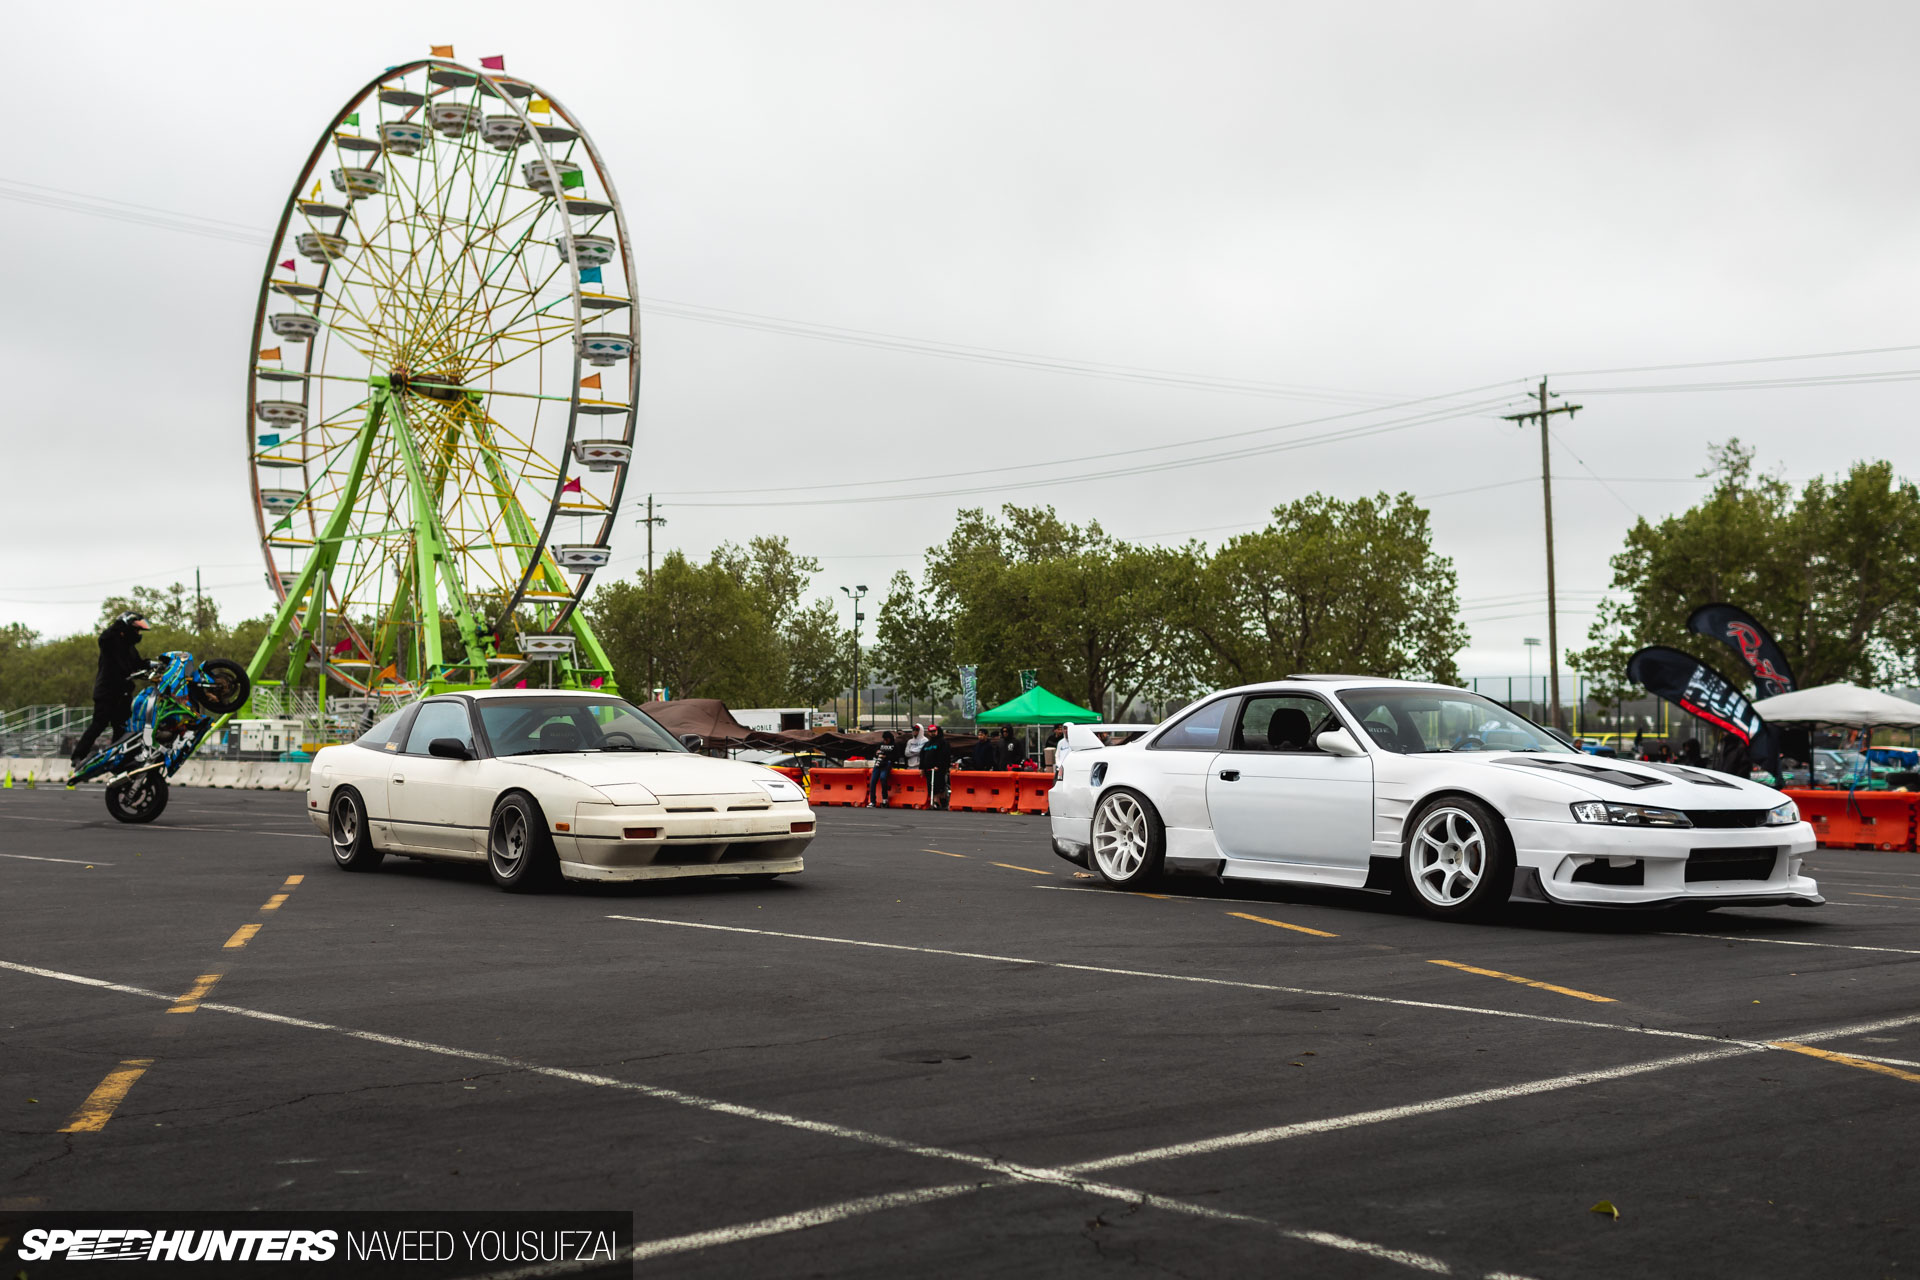 CARNVL: NorCal's Start To The Show Season